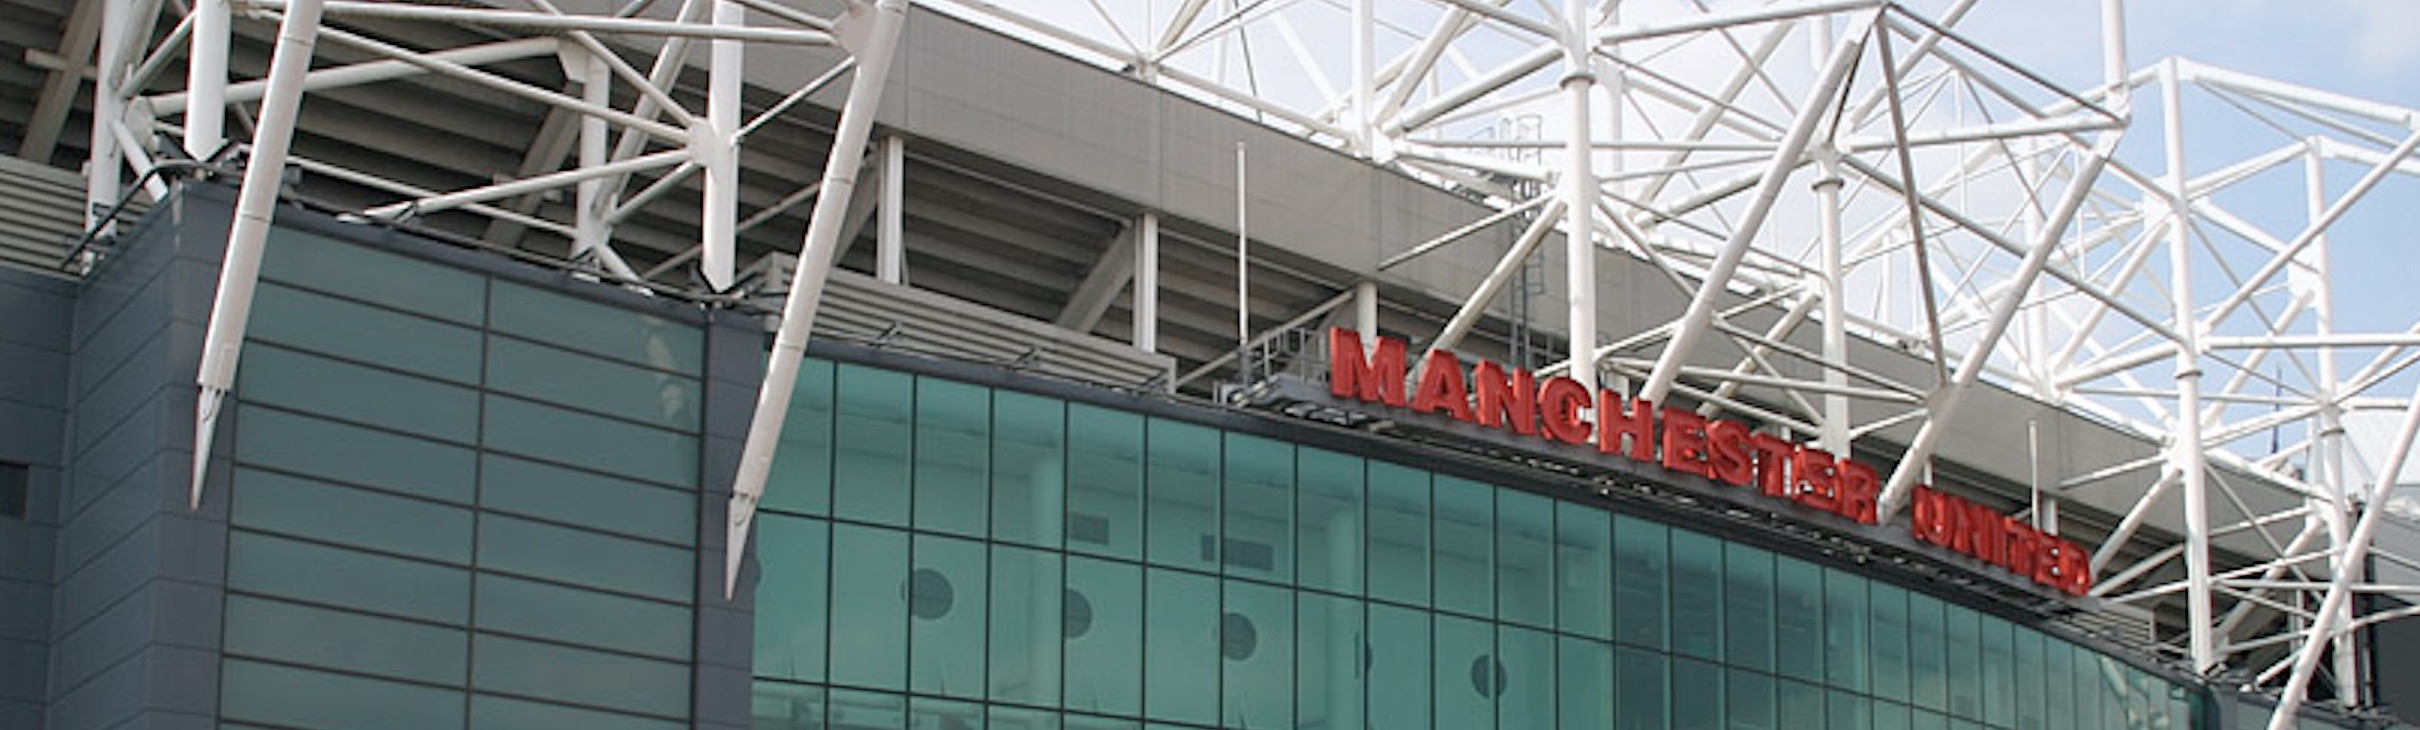 Man United V Southampton - Coach/Ferry & Hotel